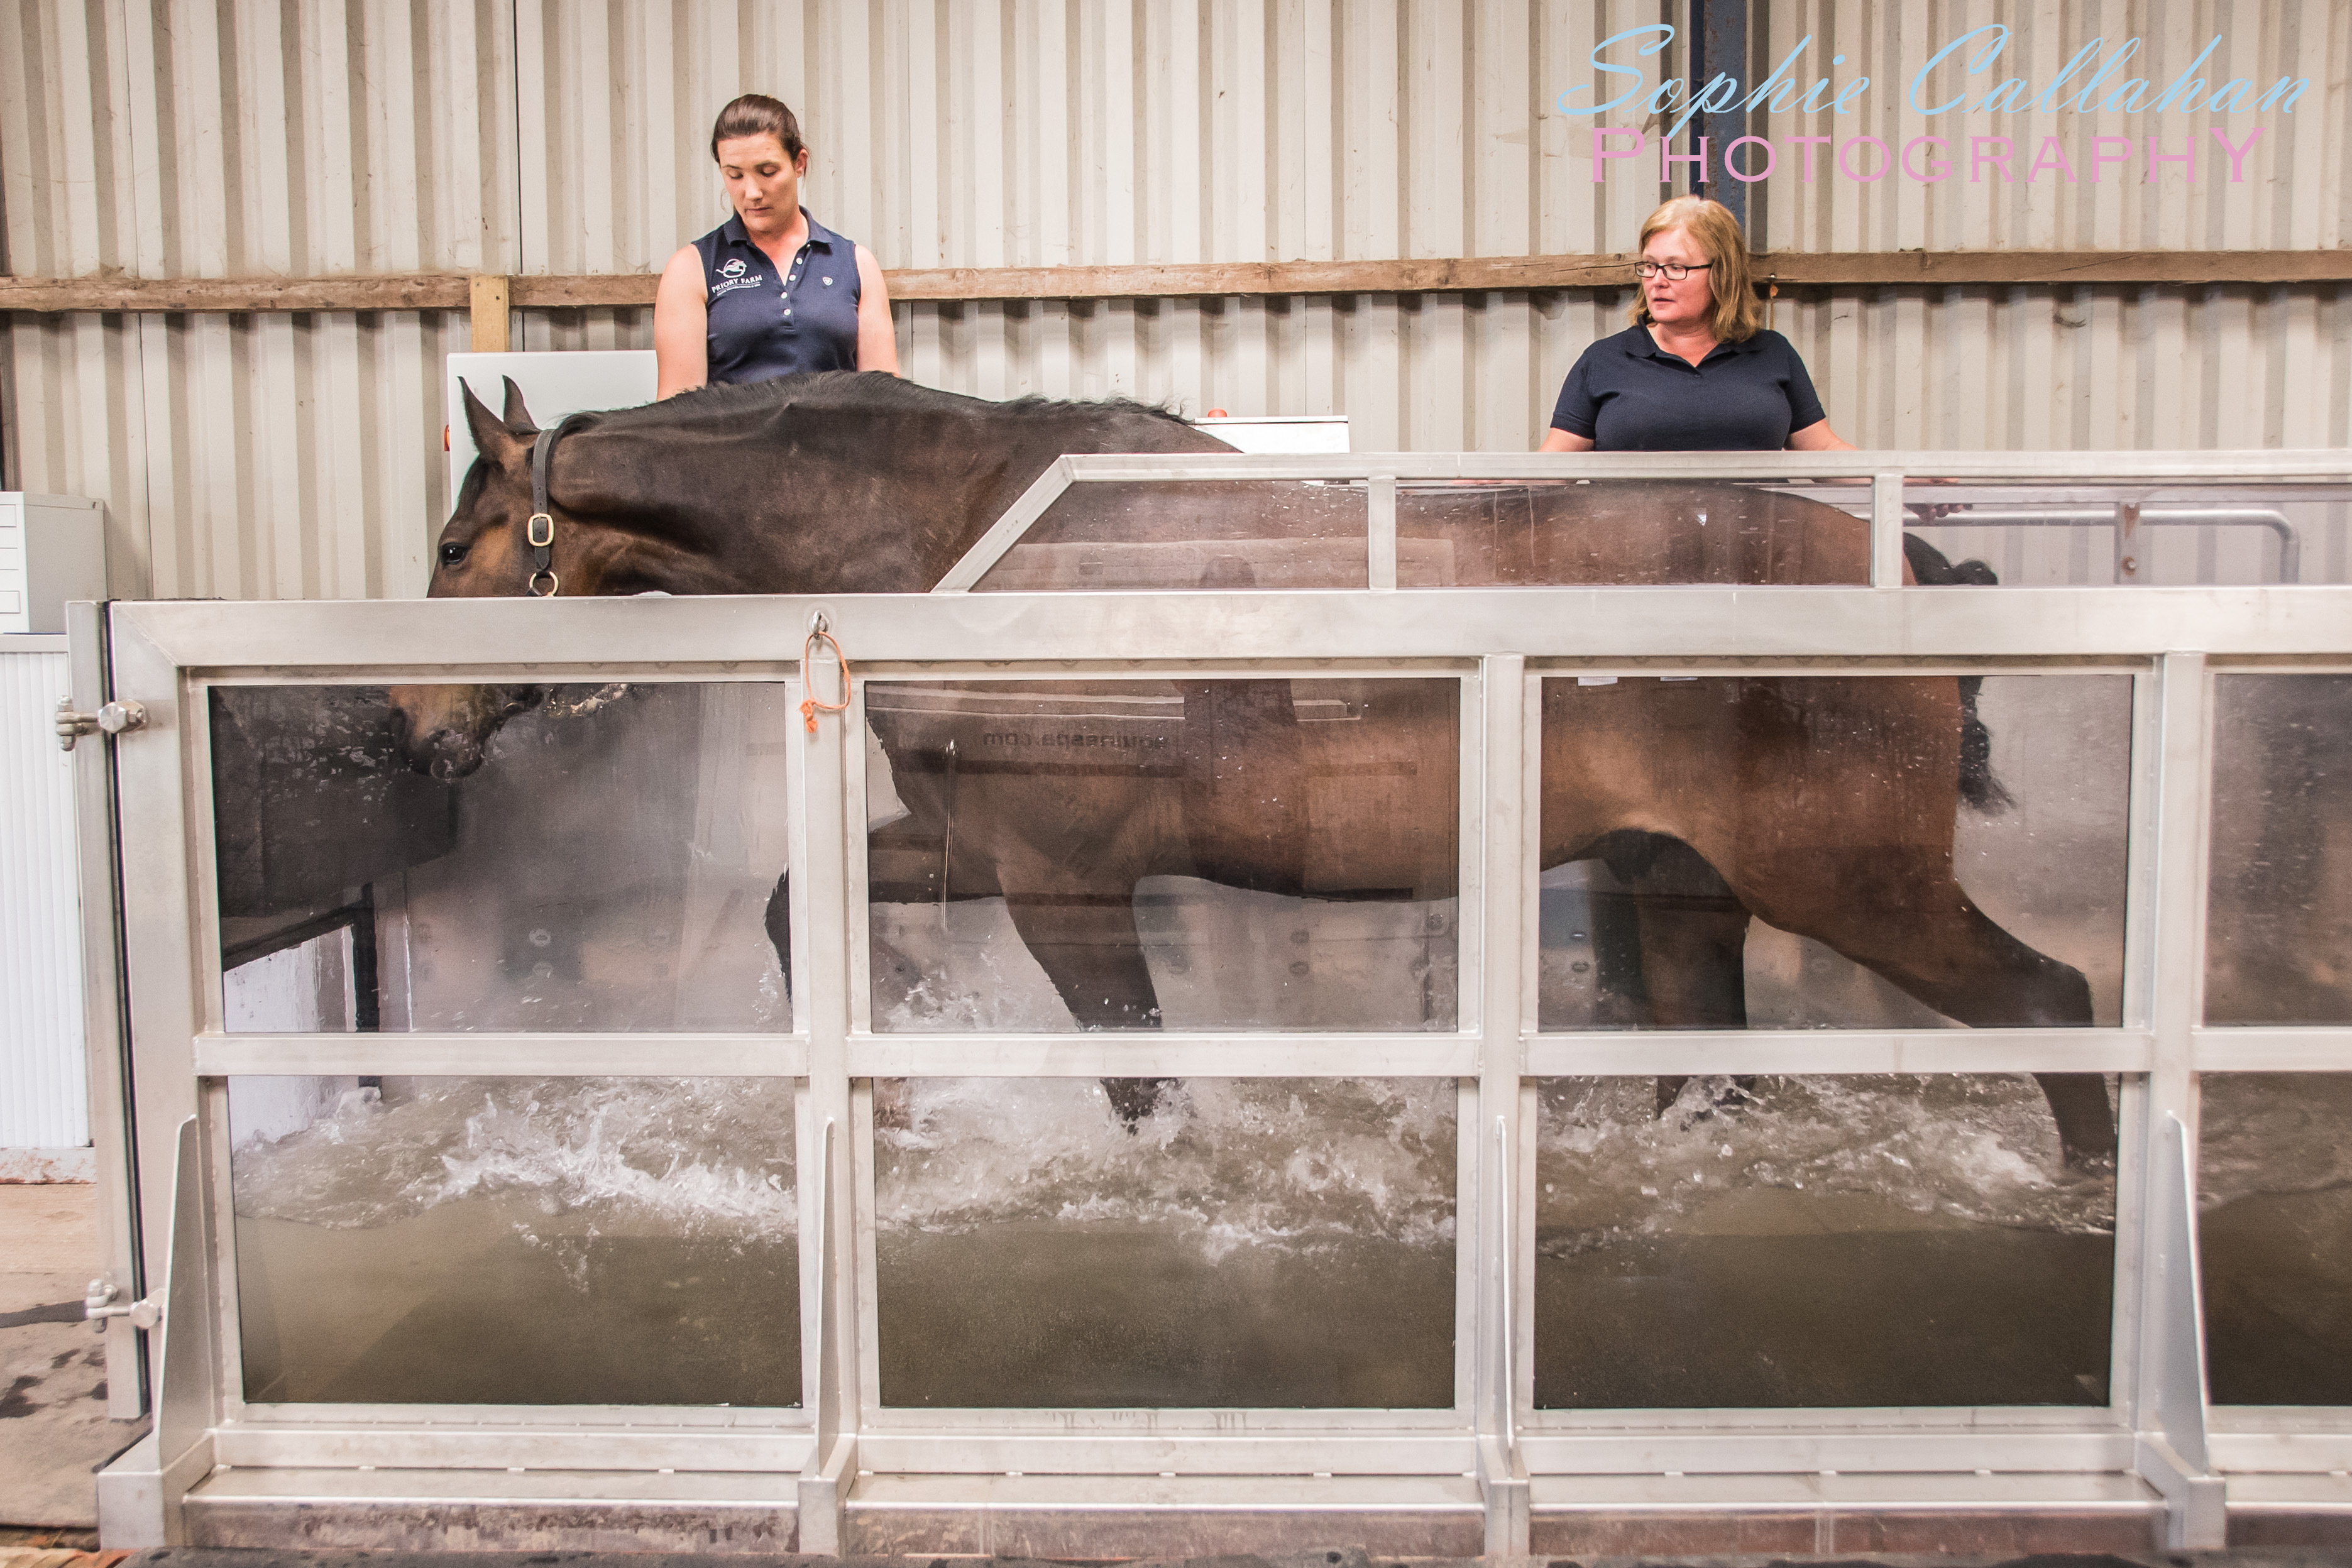 Commercial Equine Business Photography, of Priory Farm Equine Spa and Rehab Centre, by Specialist UK Equine Photographer I via sophiecallahanblog.com I #equinephotography #photography #equineblogger